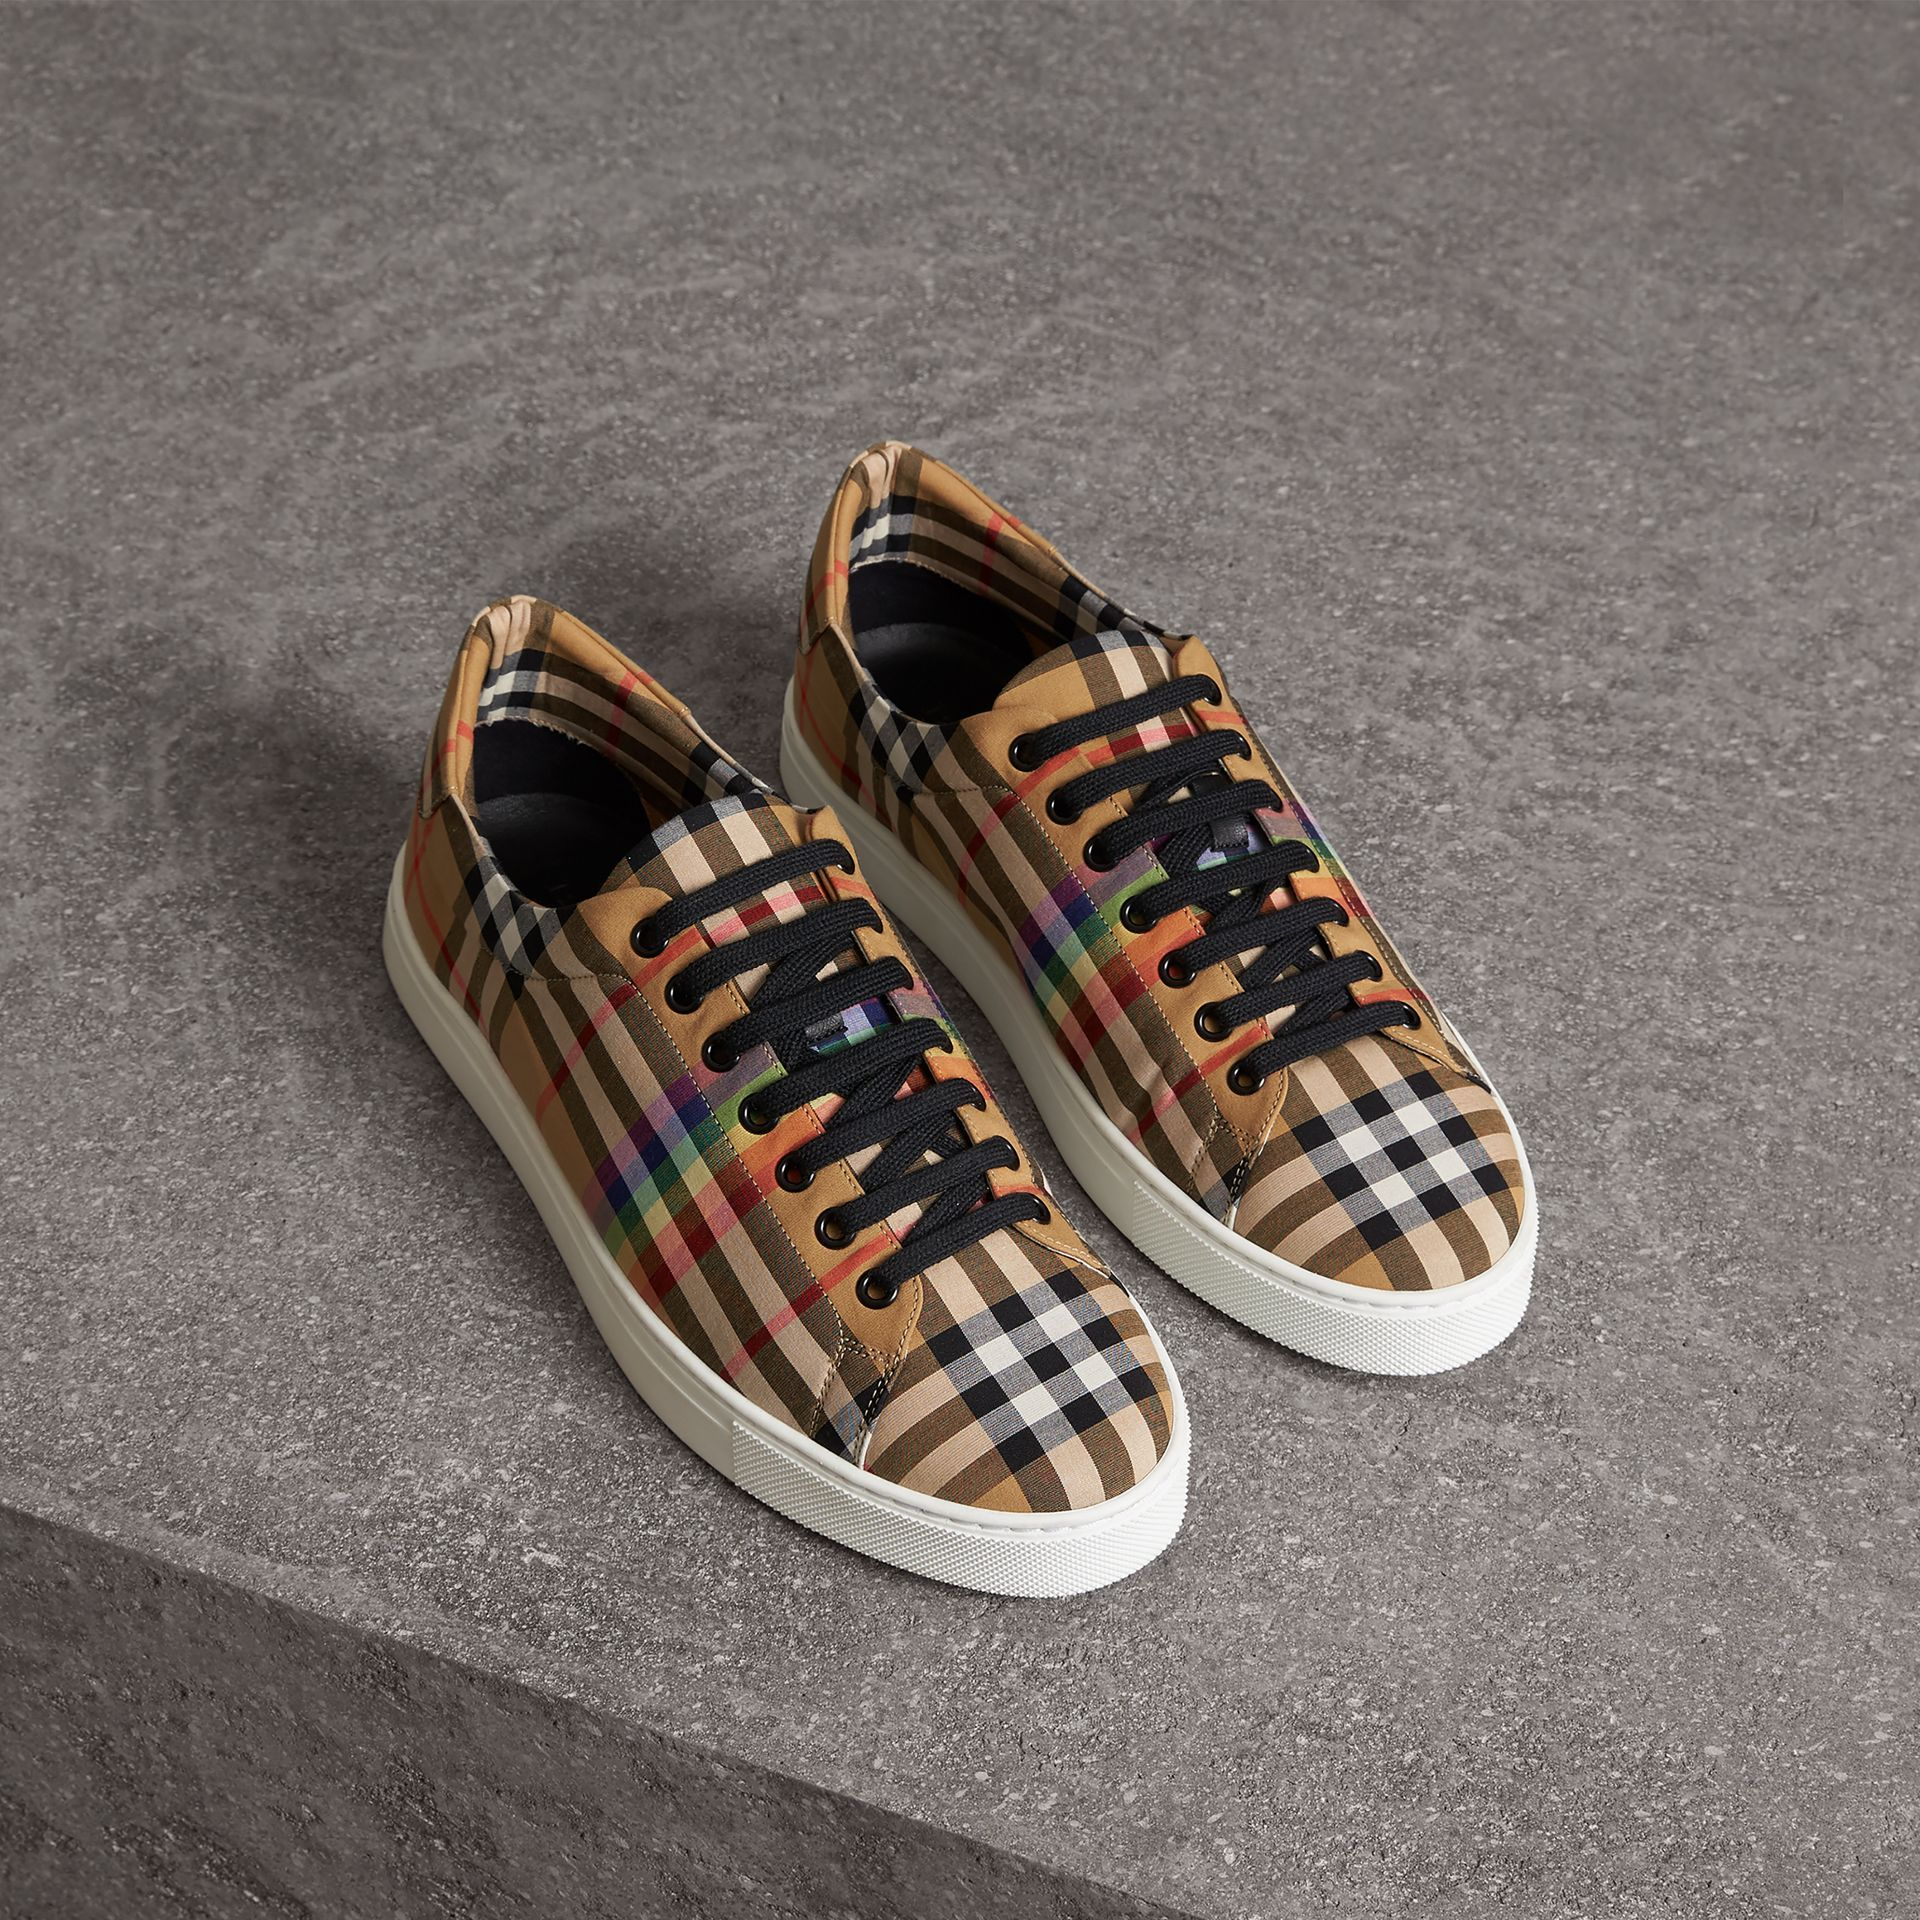 883f72d84f968 BURBERRY Rainbow Vintage Check Sneakers. #burberry #shoes ...